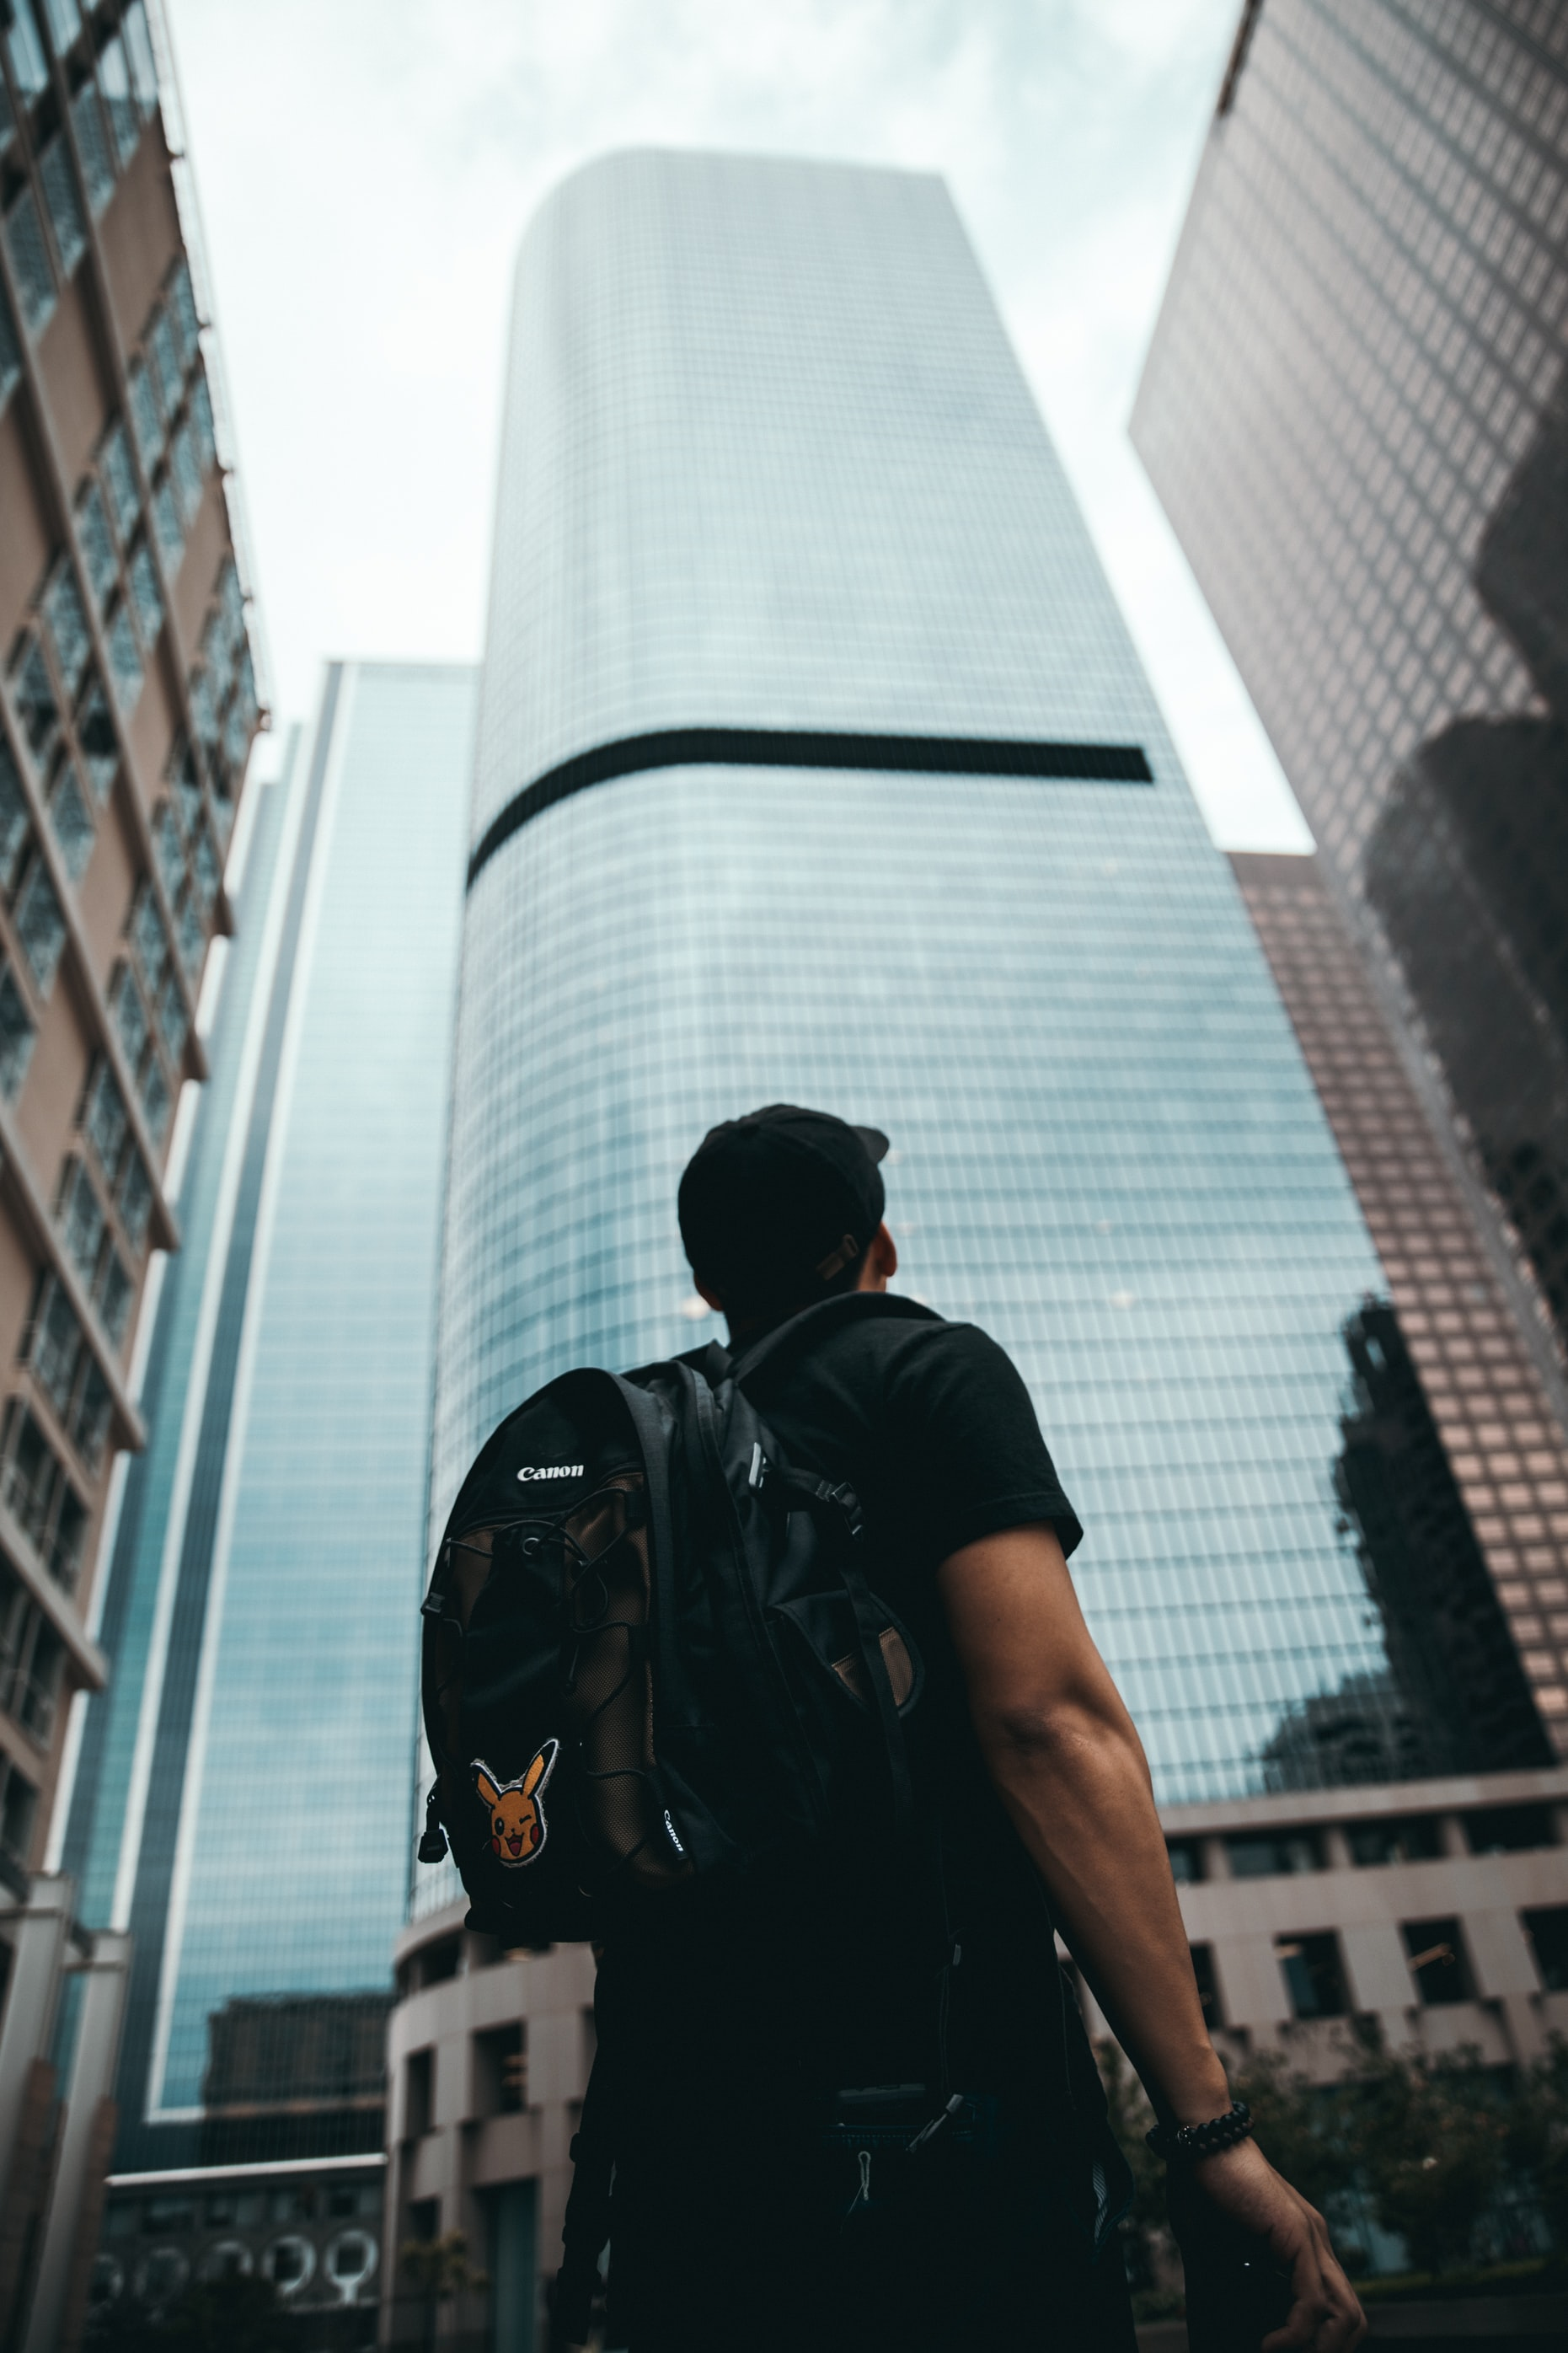 man standing near high rise buildings